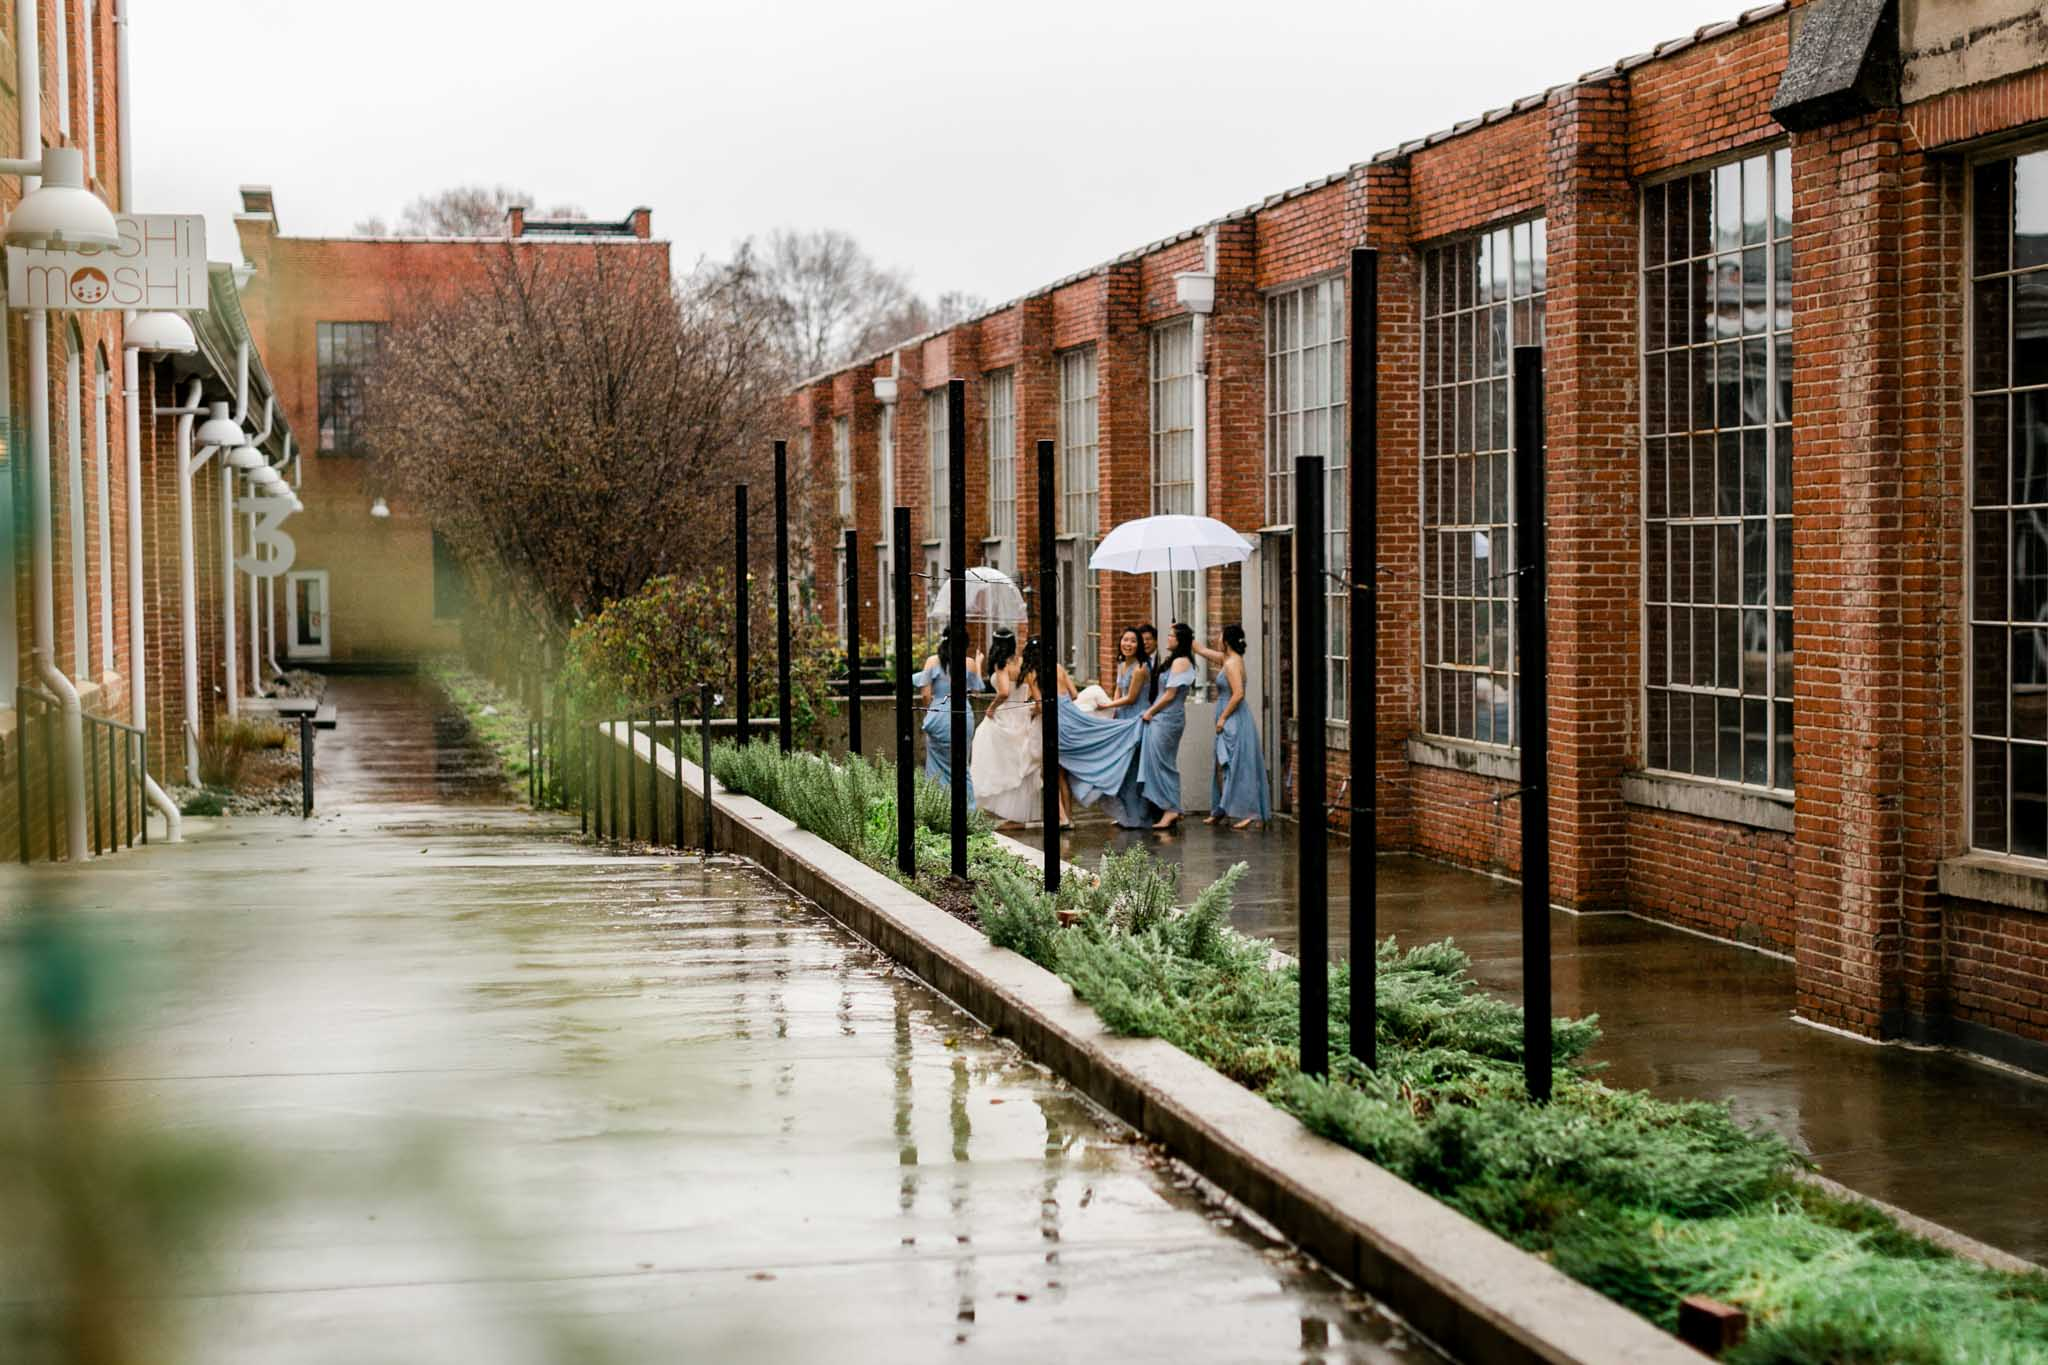 Bridesmaids and bride walking in rain | The Cotton Room Wedding | Durham Photographer | By G. Lin Photography